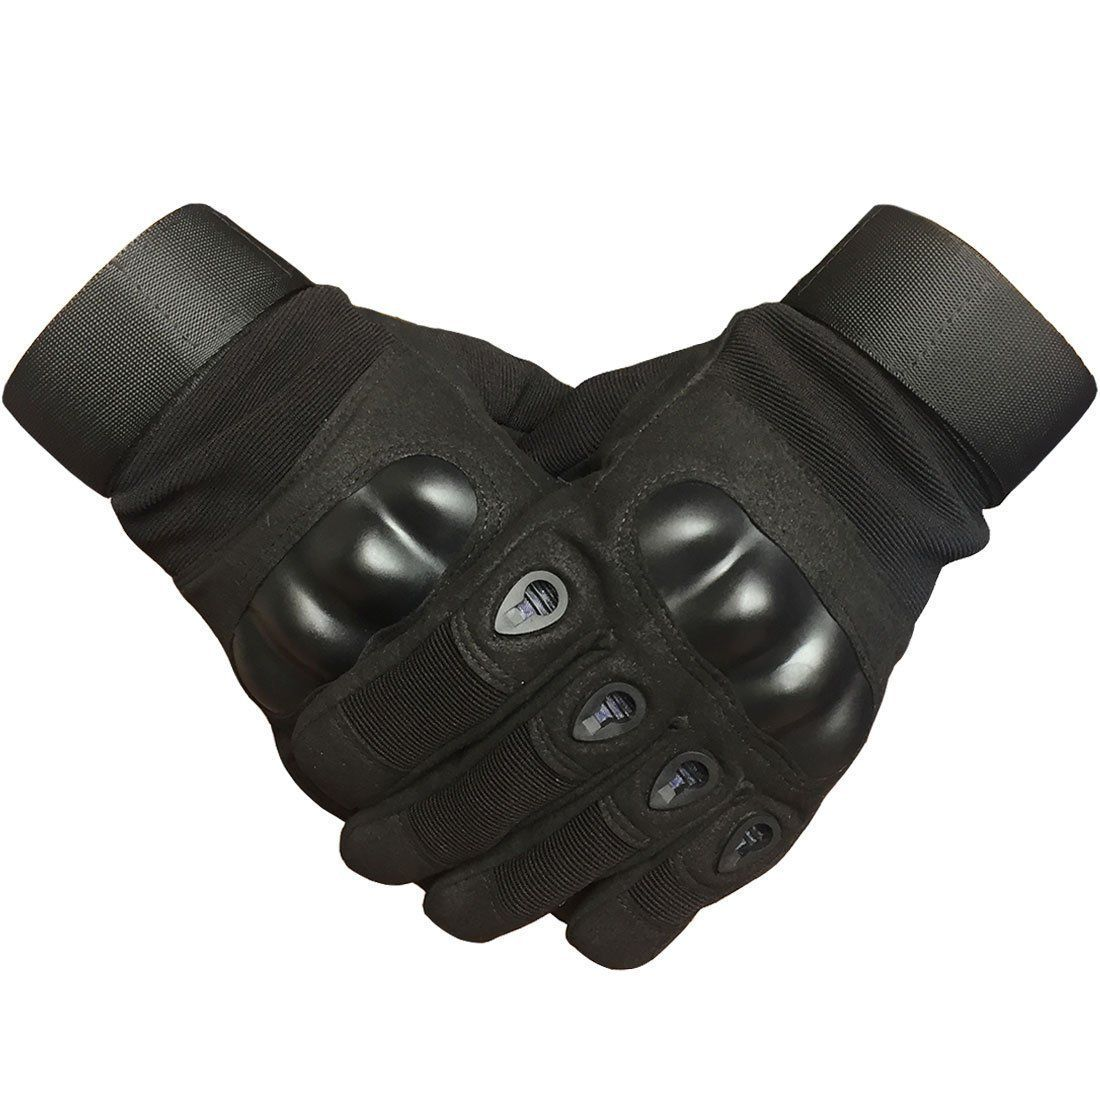 516f4d4ace56 Adiew Military Hard Knuckle Tactical Touch Screen Black Glove Full ...